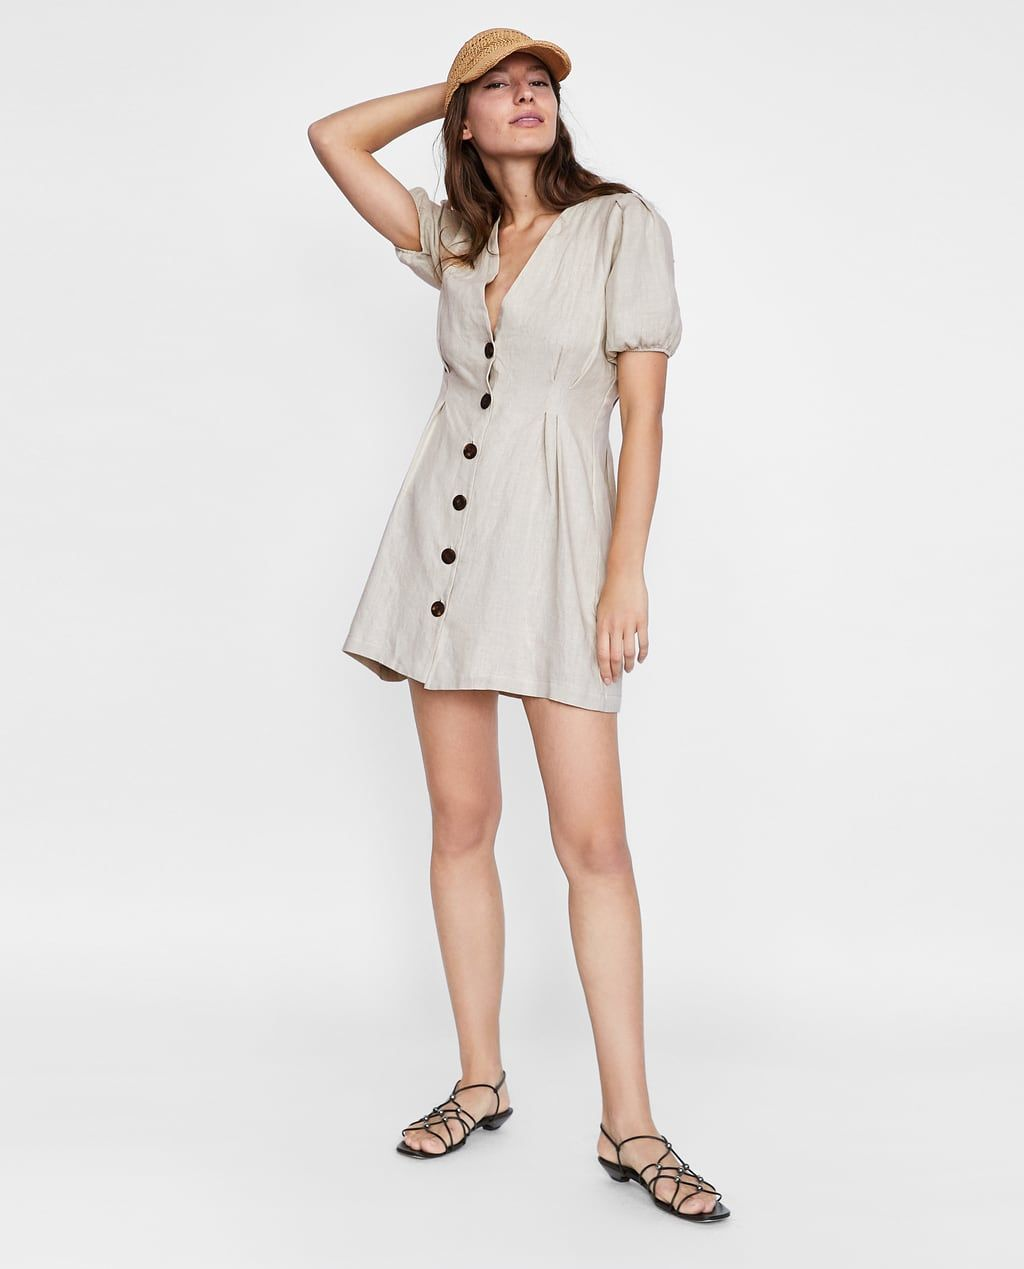 395172b5 Image 1 of BUTTONED LINEN DRESS from Zara | Spring/Summer 18' in ...